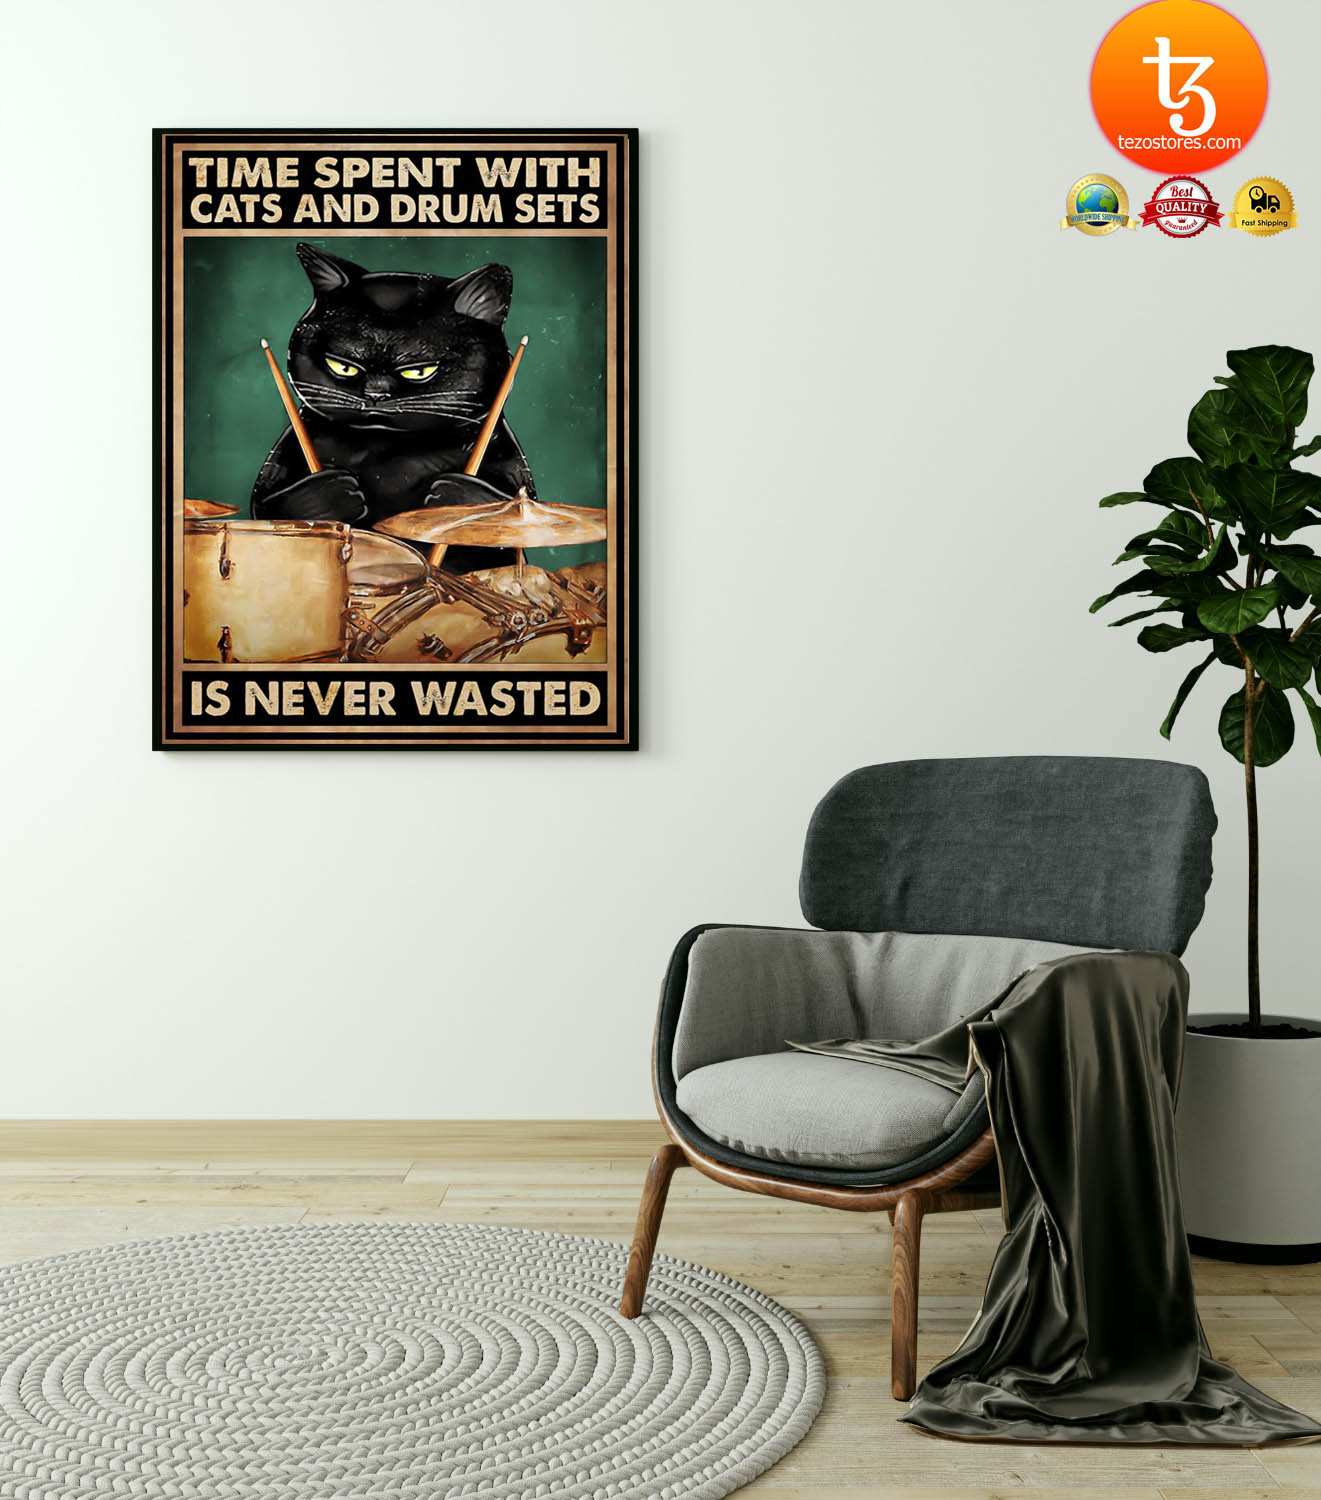 Time spent with cats and drum sets is never wasted poster 23